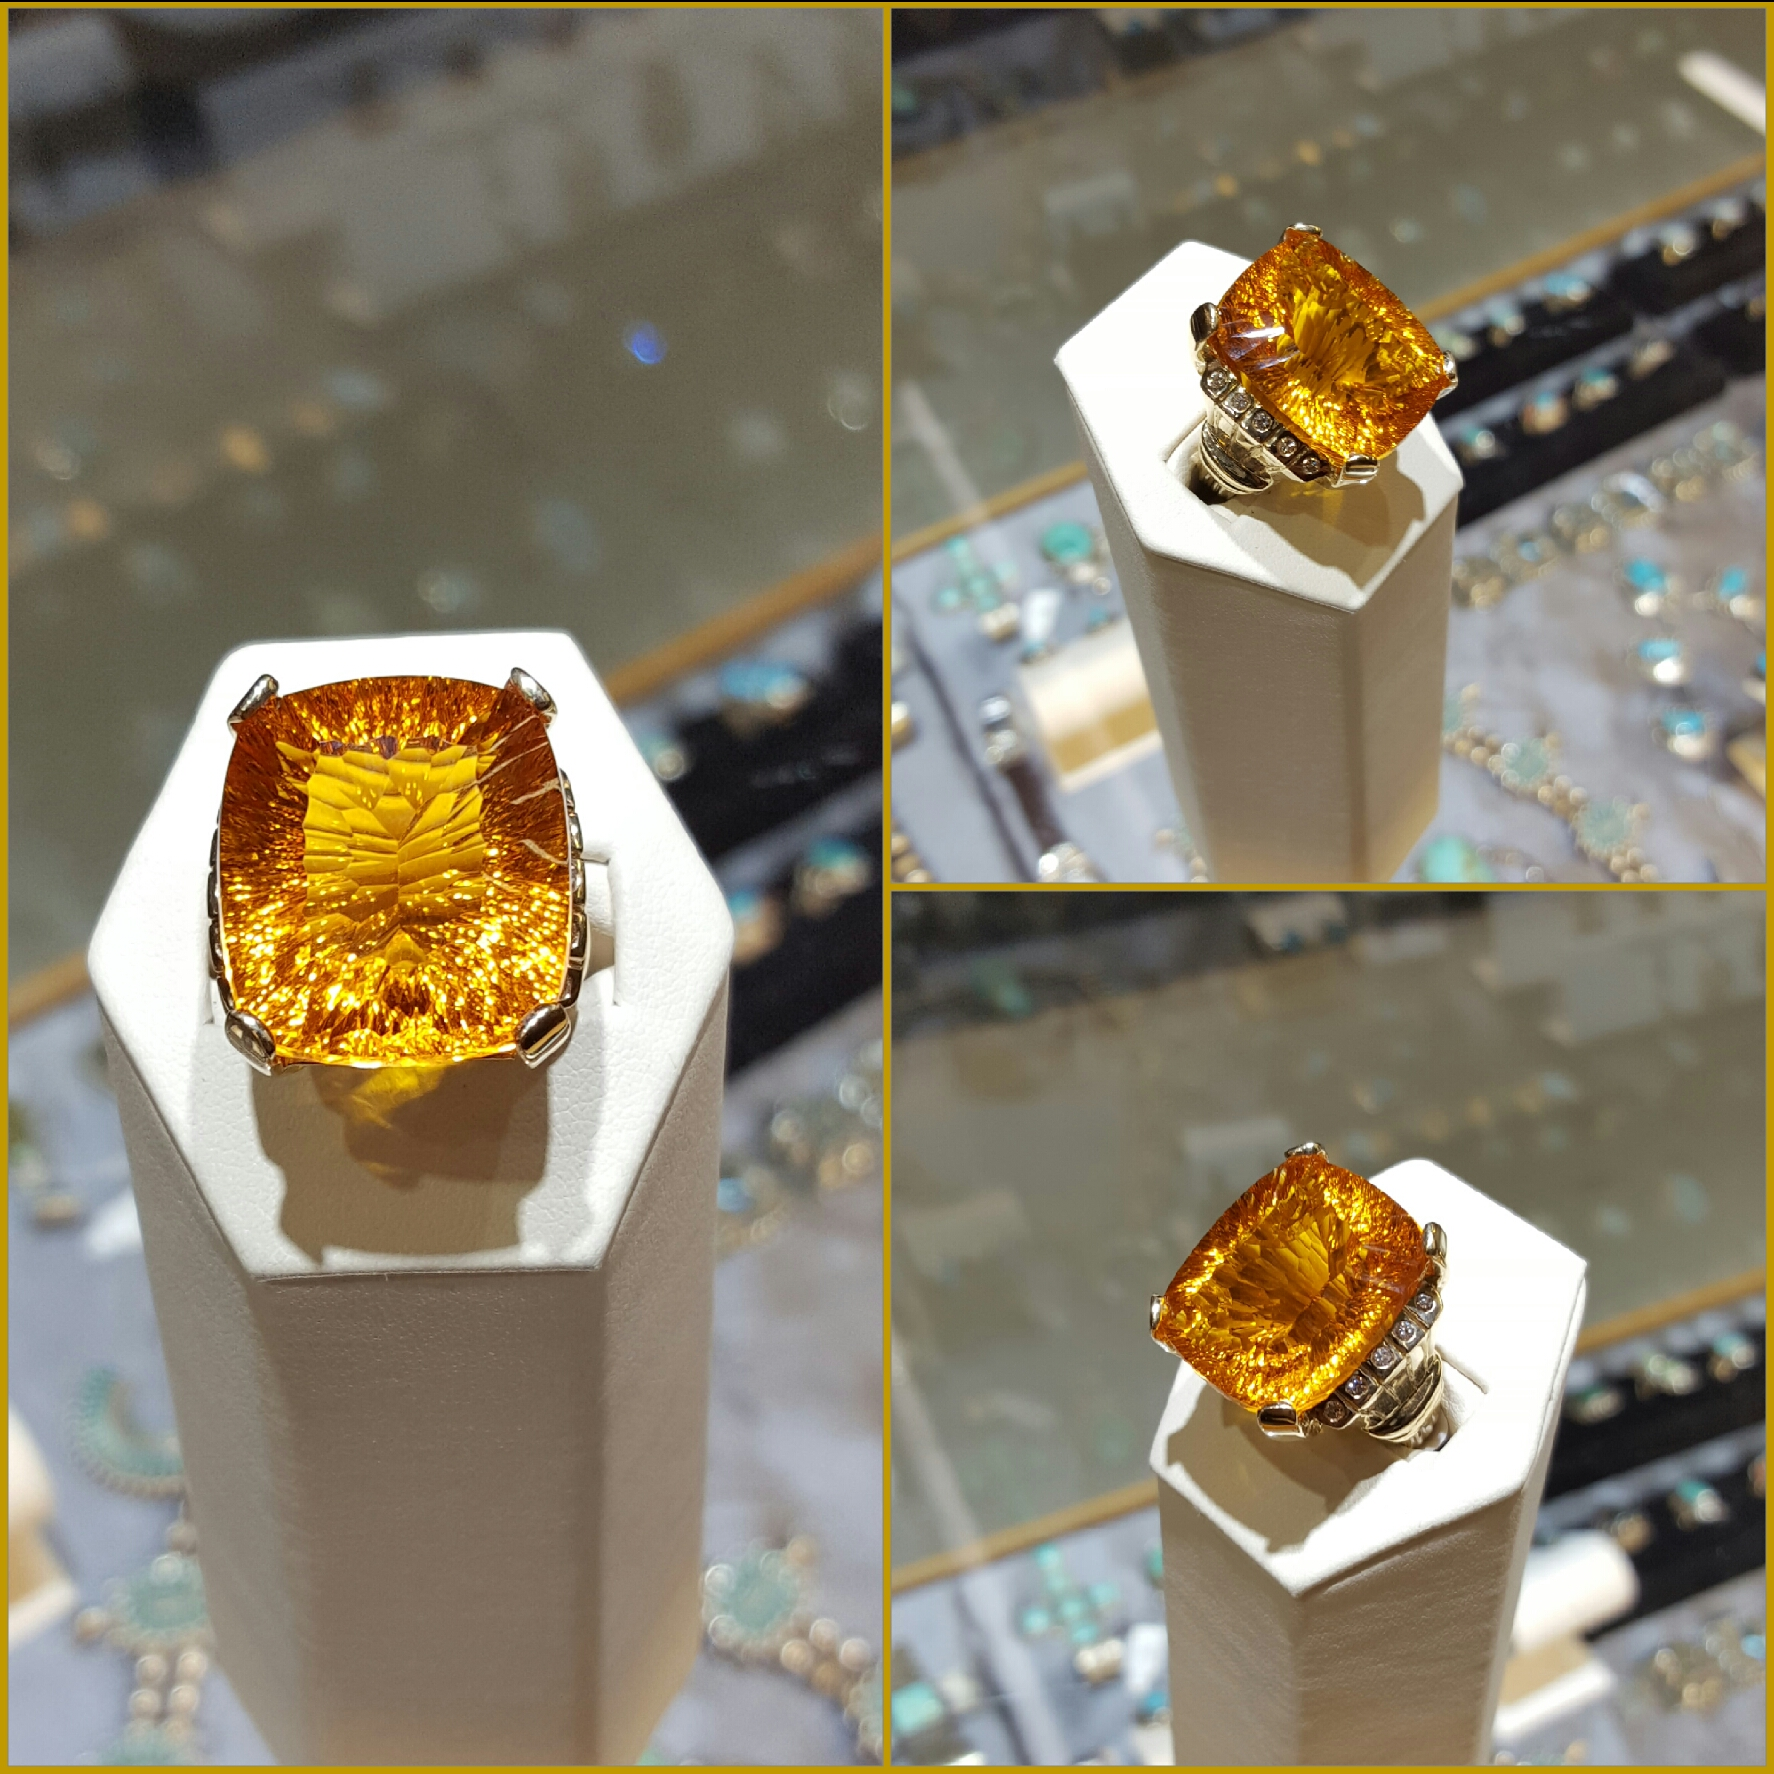 33.65 Citrine with Diamonds